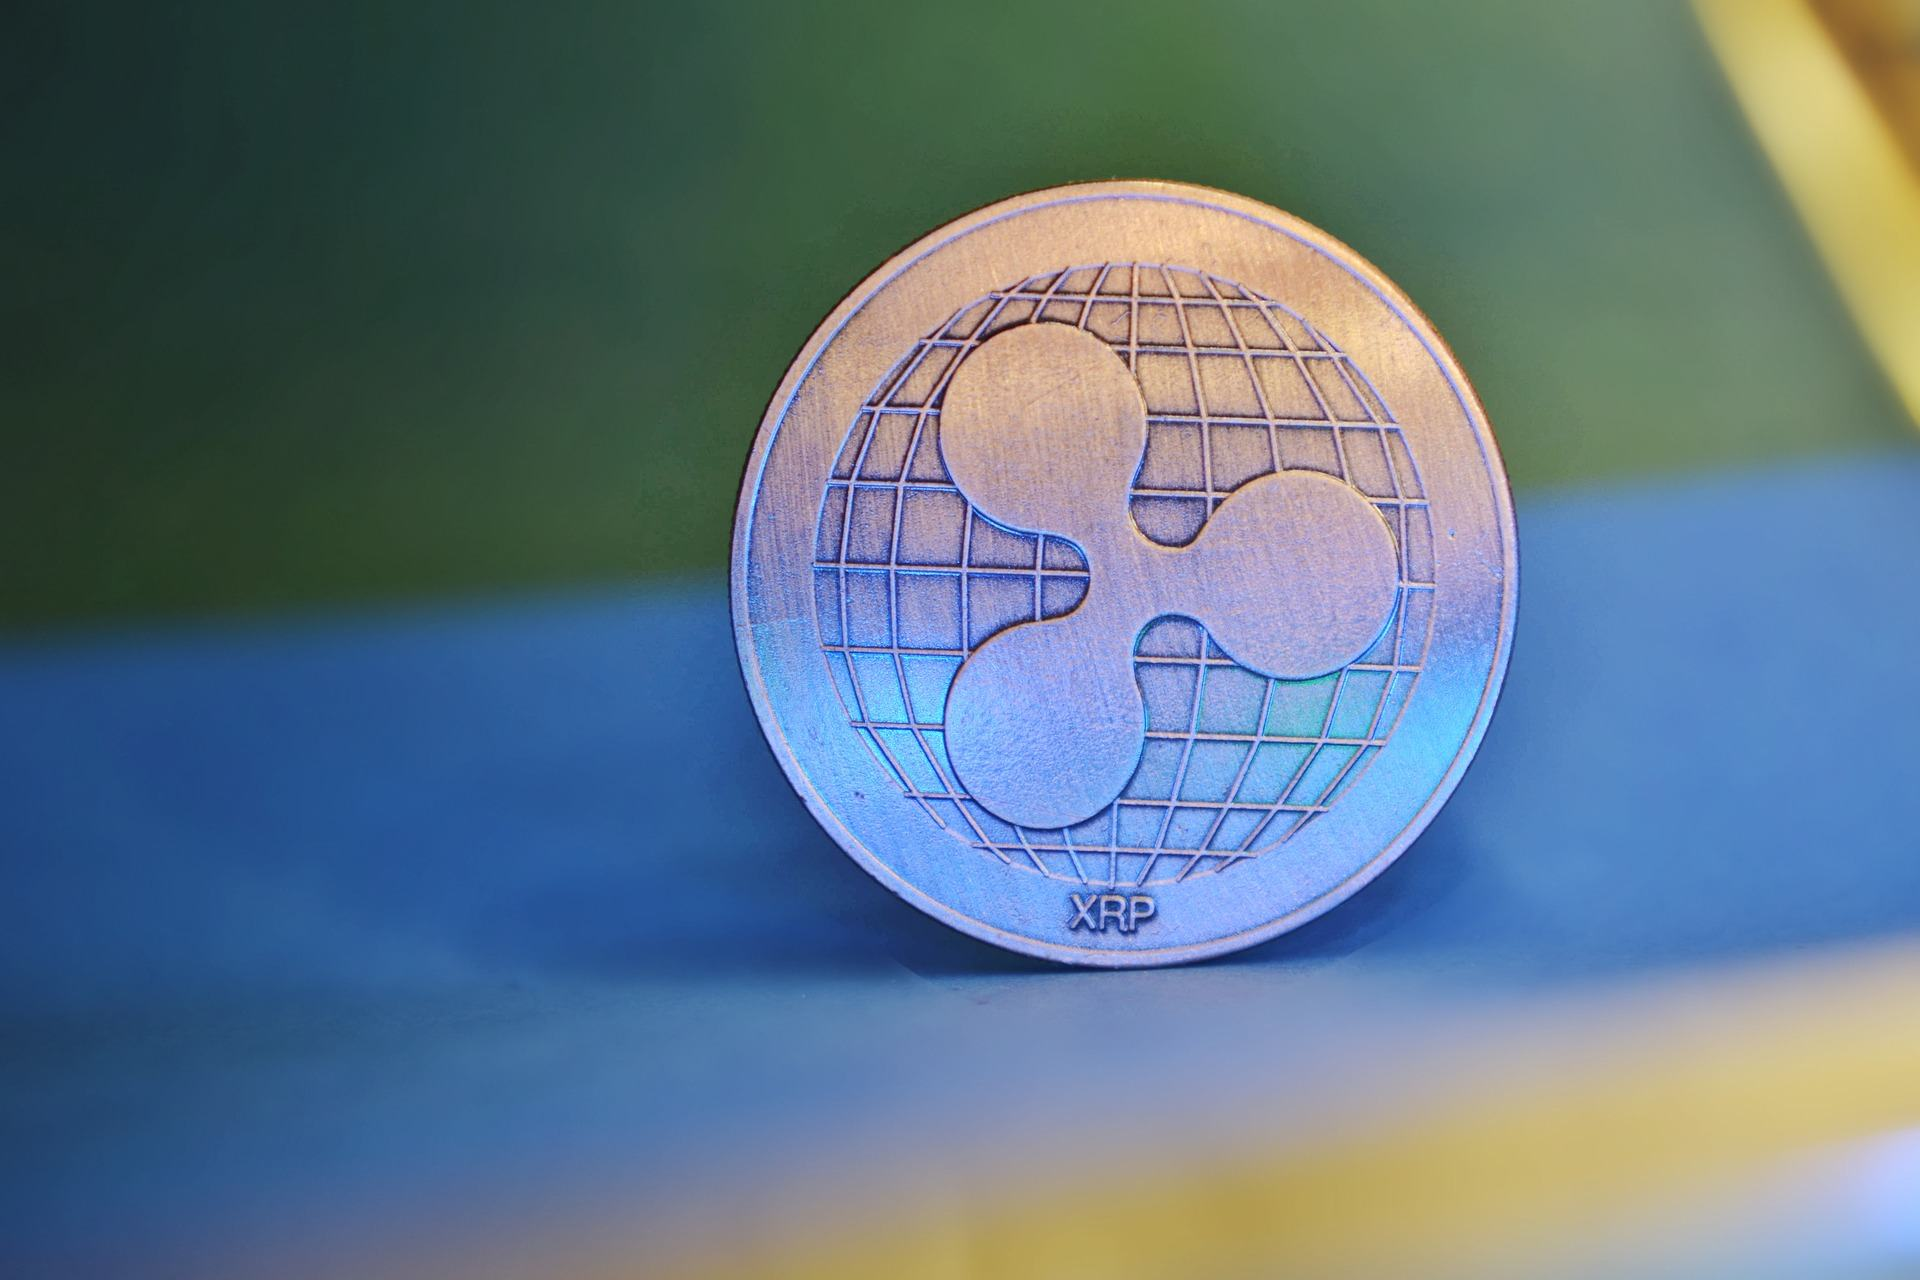 Ripple Co-Founder Jed McCaleb Sells 28.6 Million XRP After 25-Day Pause